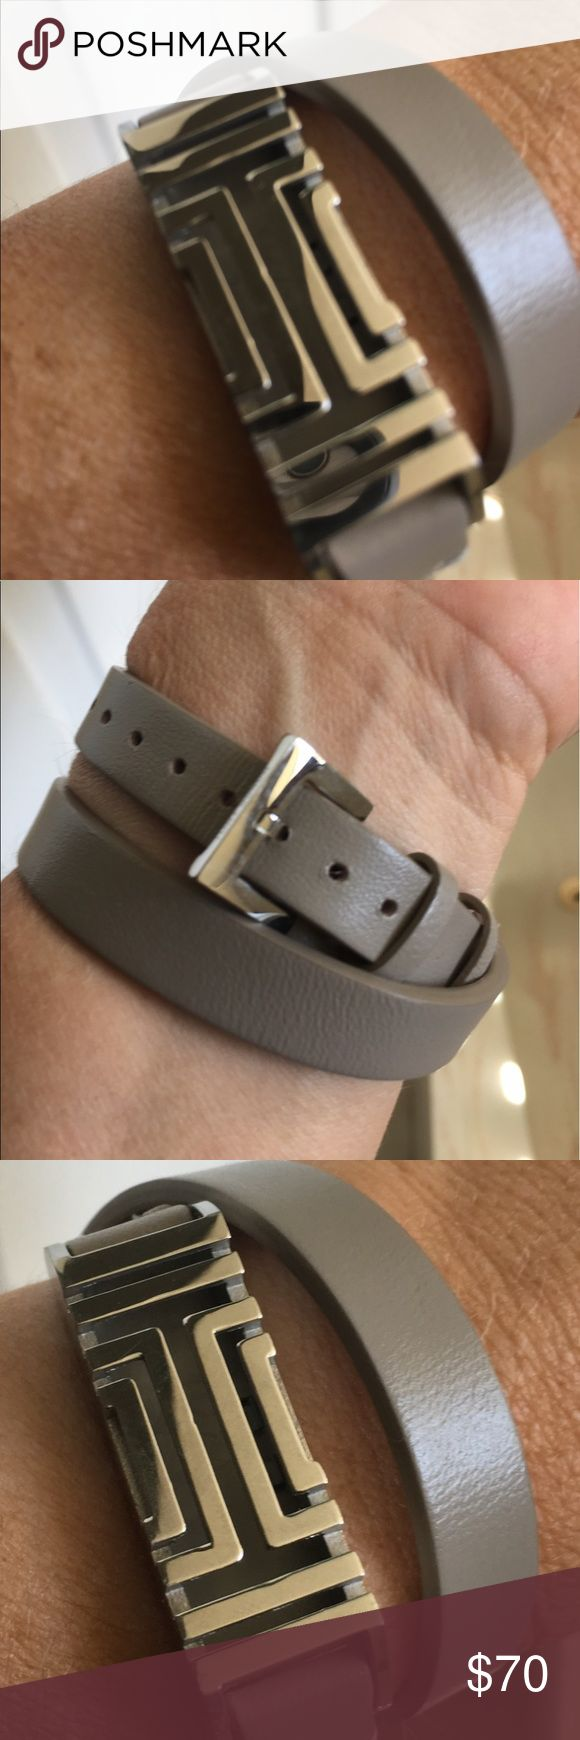 Tory Burch wrap Fitbit bracelet Mint condition. Only worn a few times. Great for work. Who doesn't need a beautiful Fitbit holder. No one even knows you're wearing a fitness tracker. Tory Burch Jewelry Bracelets